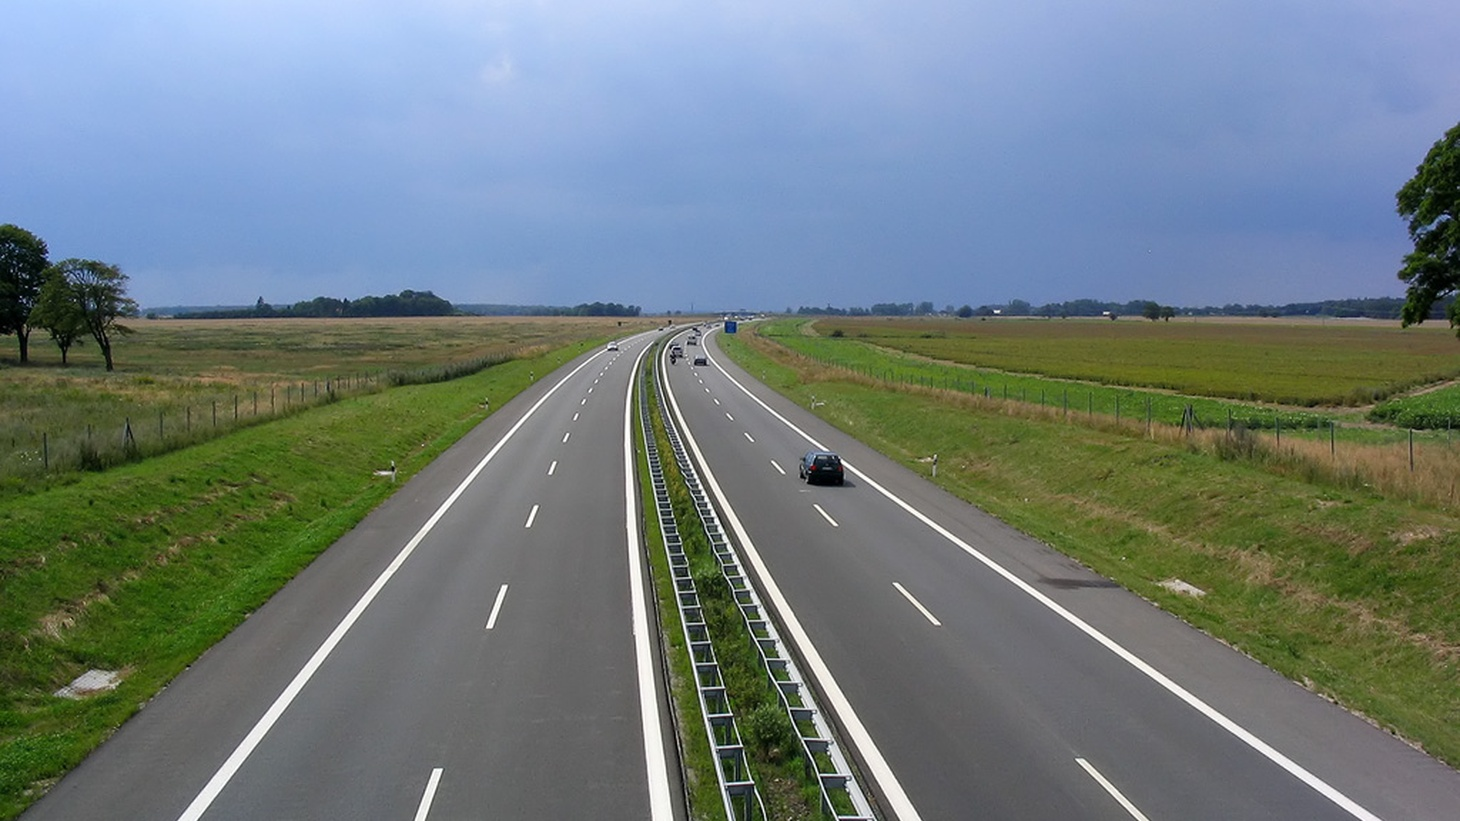 A stretch of the autobahn in Germany.